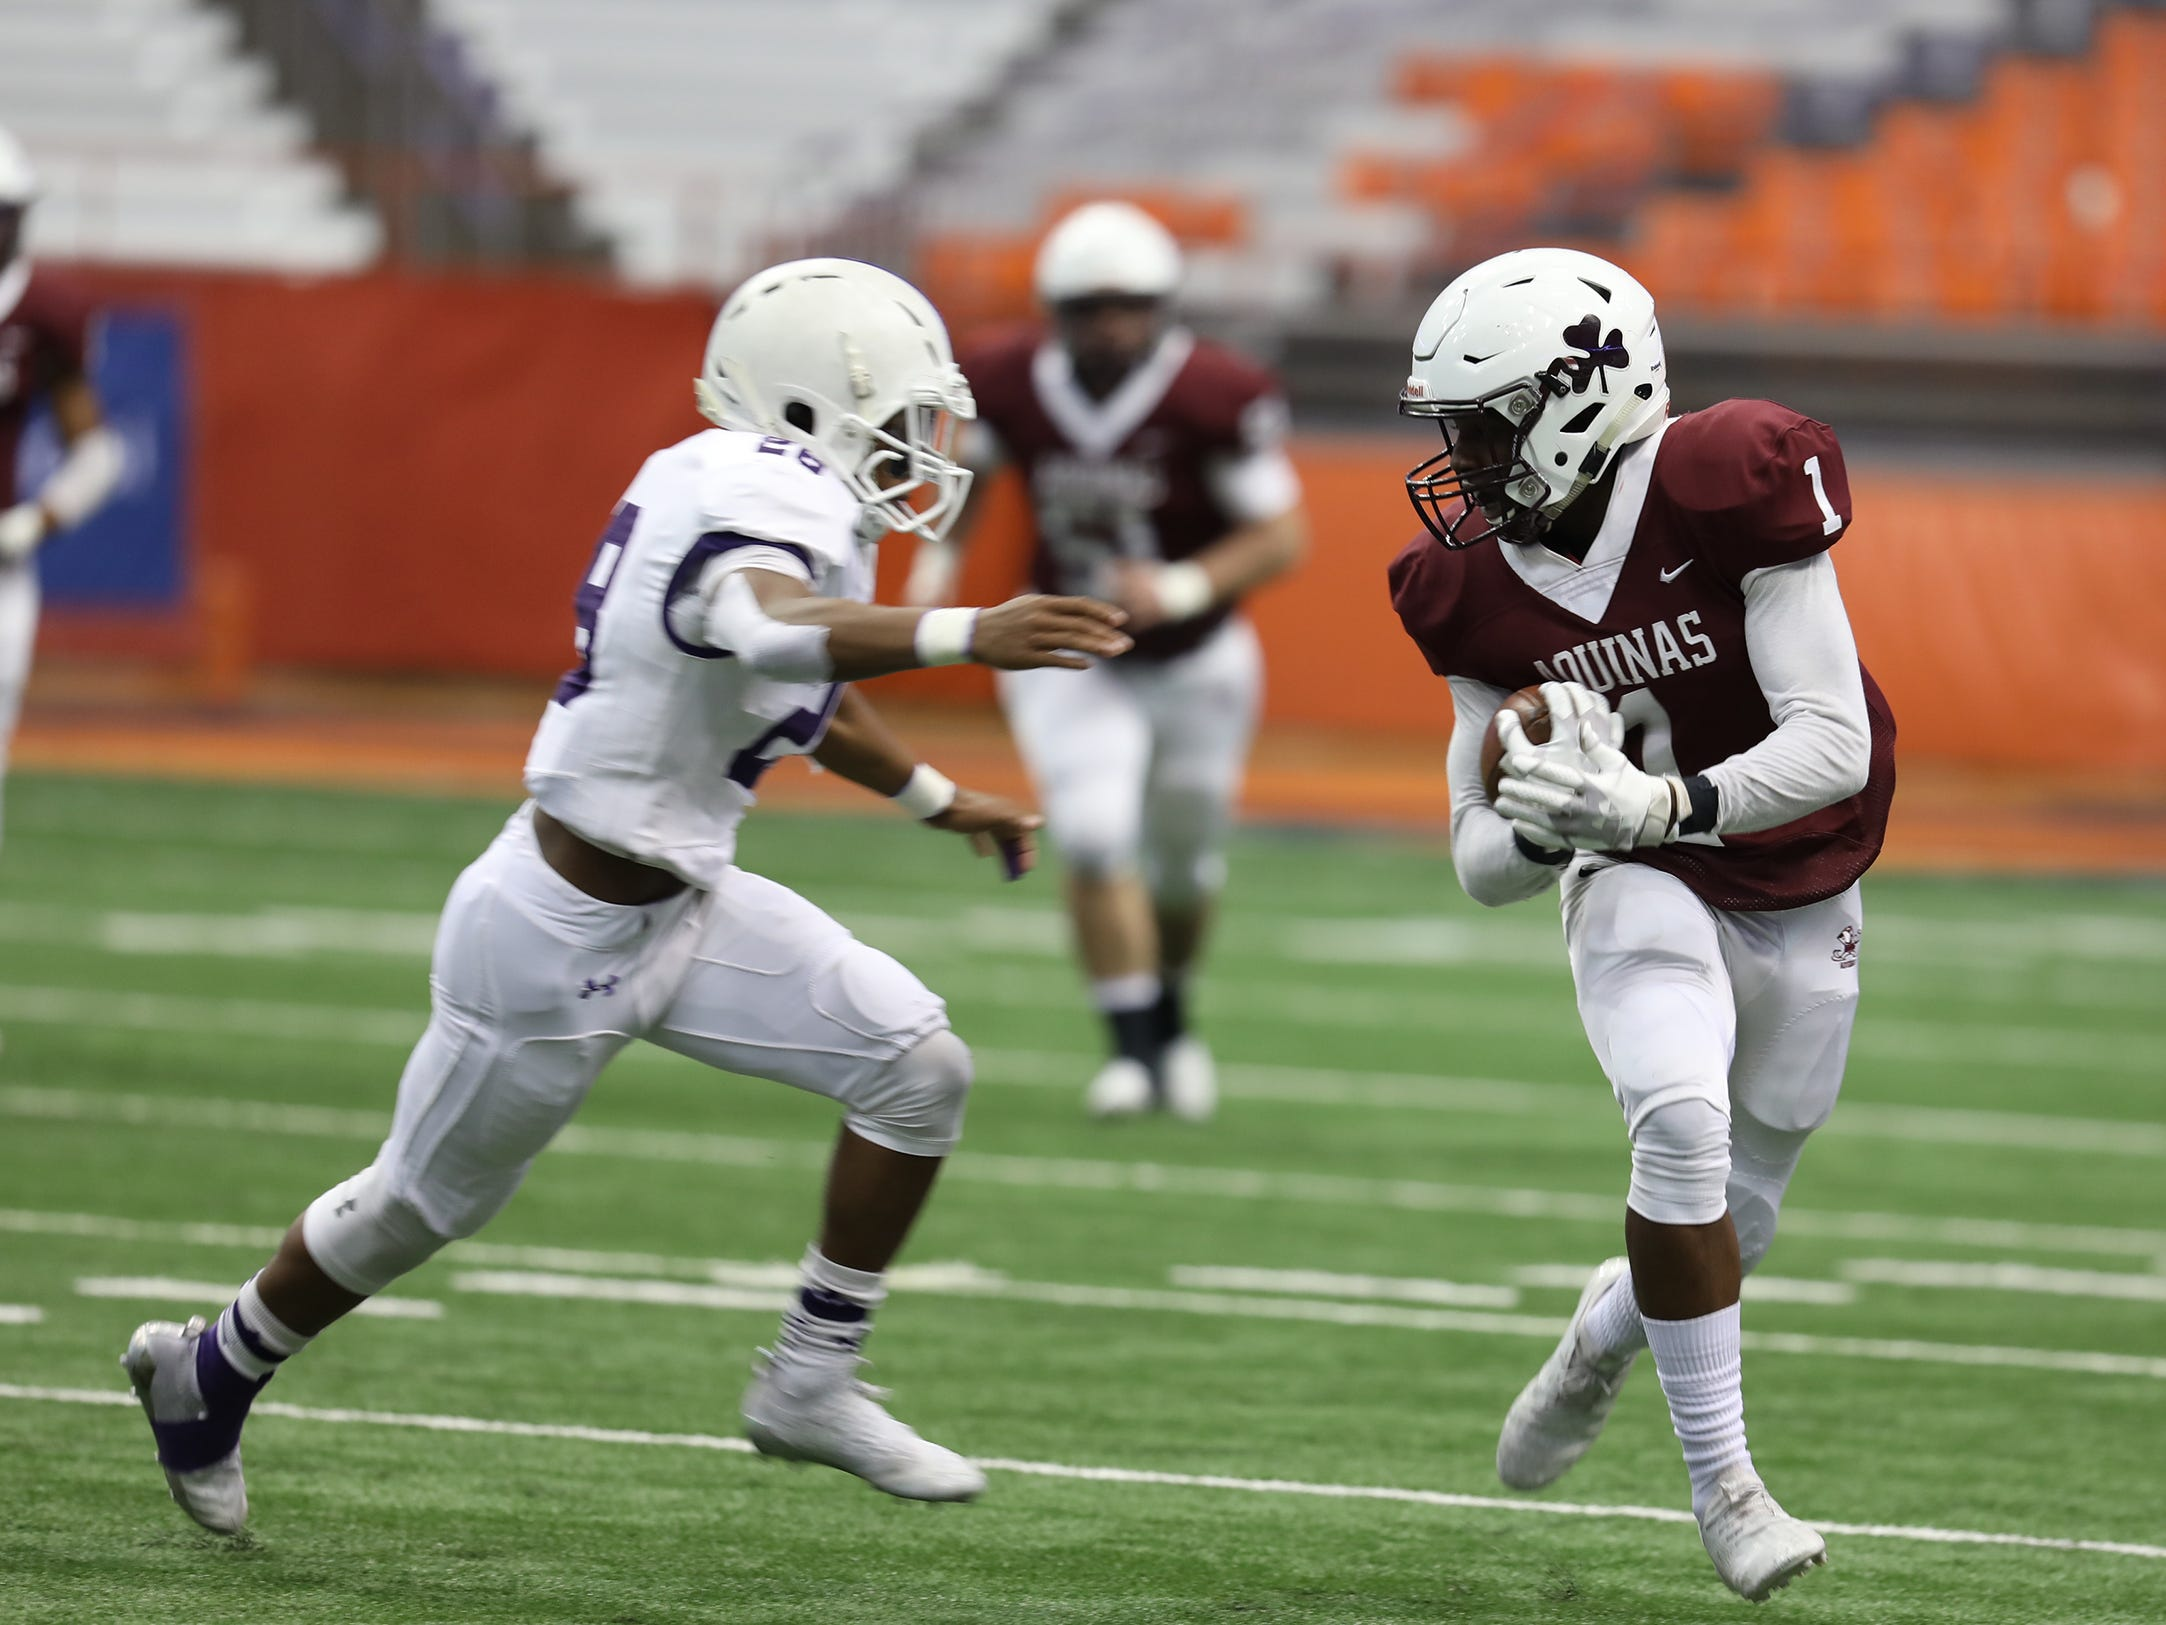 New Rochelle's Colin Jennings starts to catch up to Aquinas' Ulysees Russell.